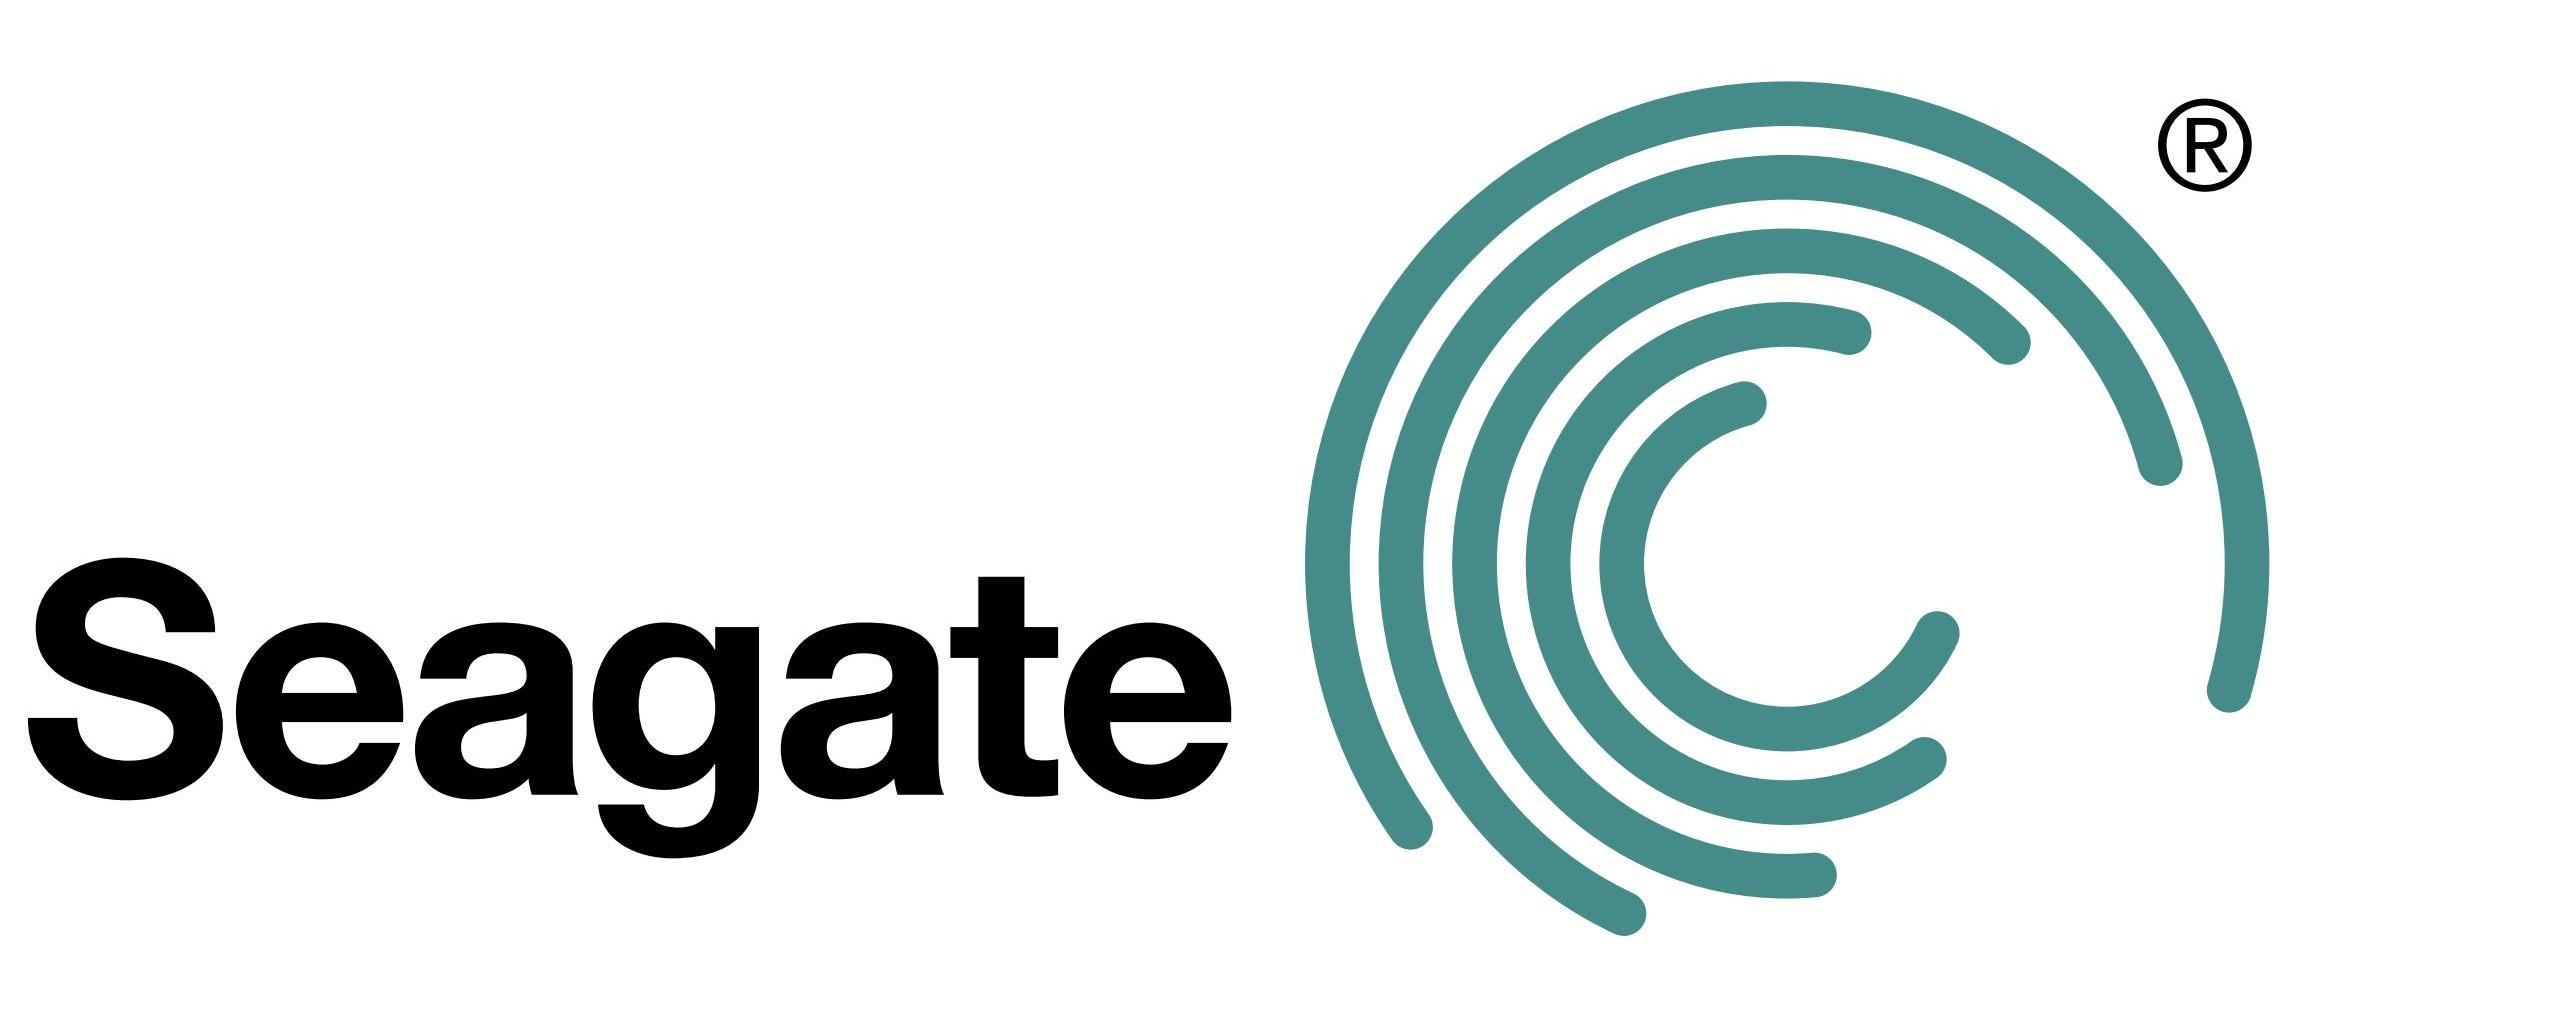 Seagate is the #1 manufacturer of hard drives and storage solutions  worldwide. Research, comparison shop and find the best deal here. - Seagate PNG